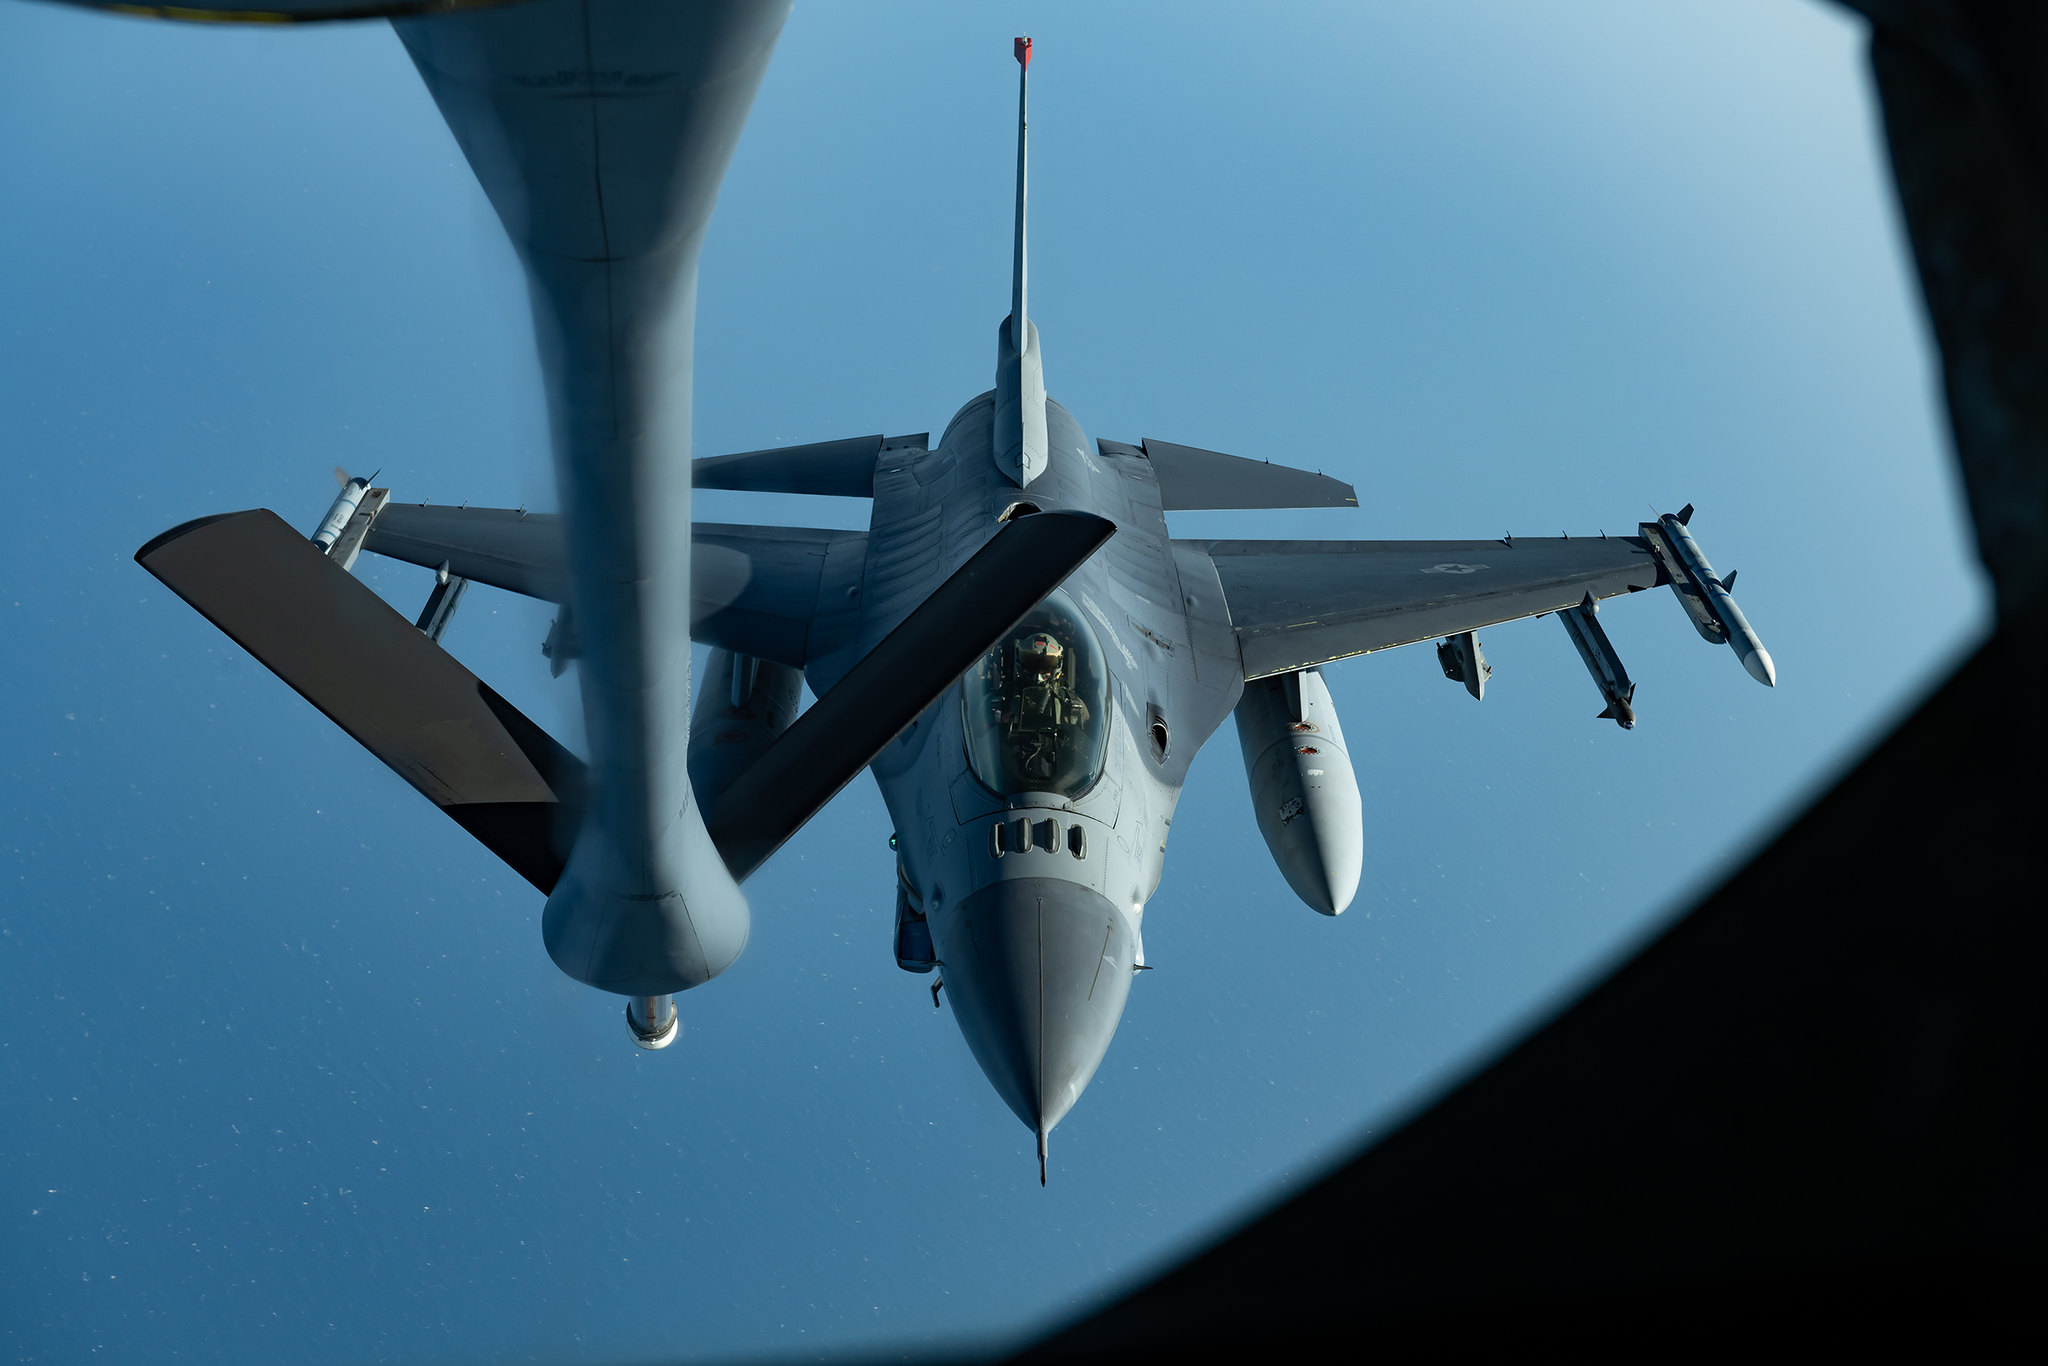 An F-16CM Fighting Falcon prepares to refuel with a KC-135 Stratotanker during a routine training exercise off the coast of Japan, May 8, 2019. (Airman 1st Class Matthew Seefeldt/Air Force)